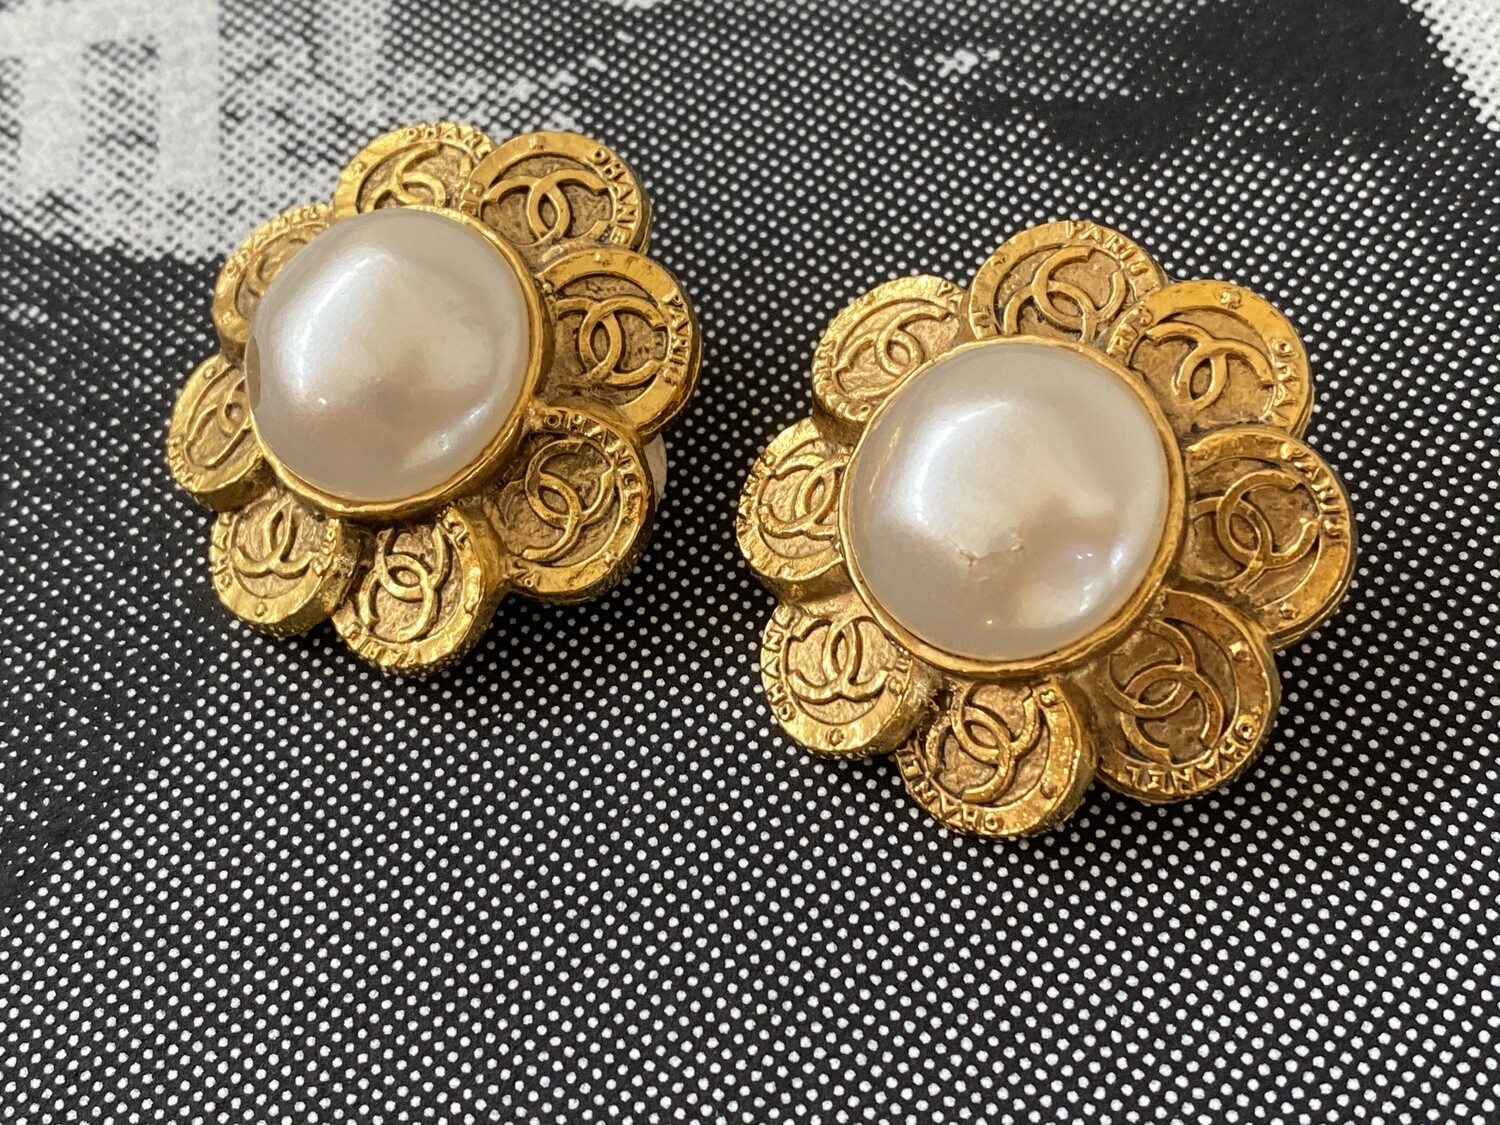 CHANEL VINTAGE CC LOGOS FLOWER PETAL COIN GOLD PEARL CLIP ON EARRINGS